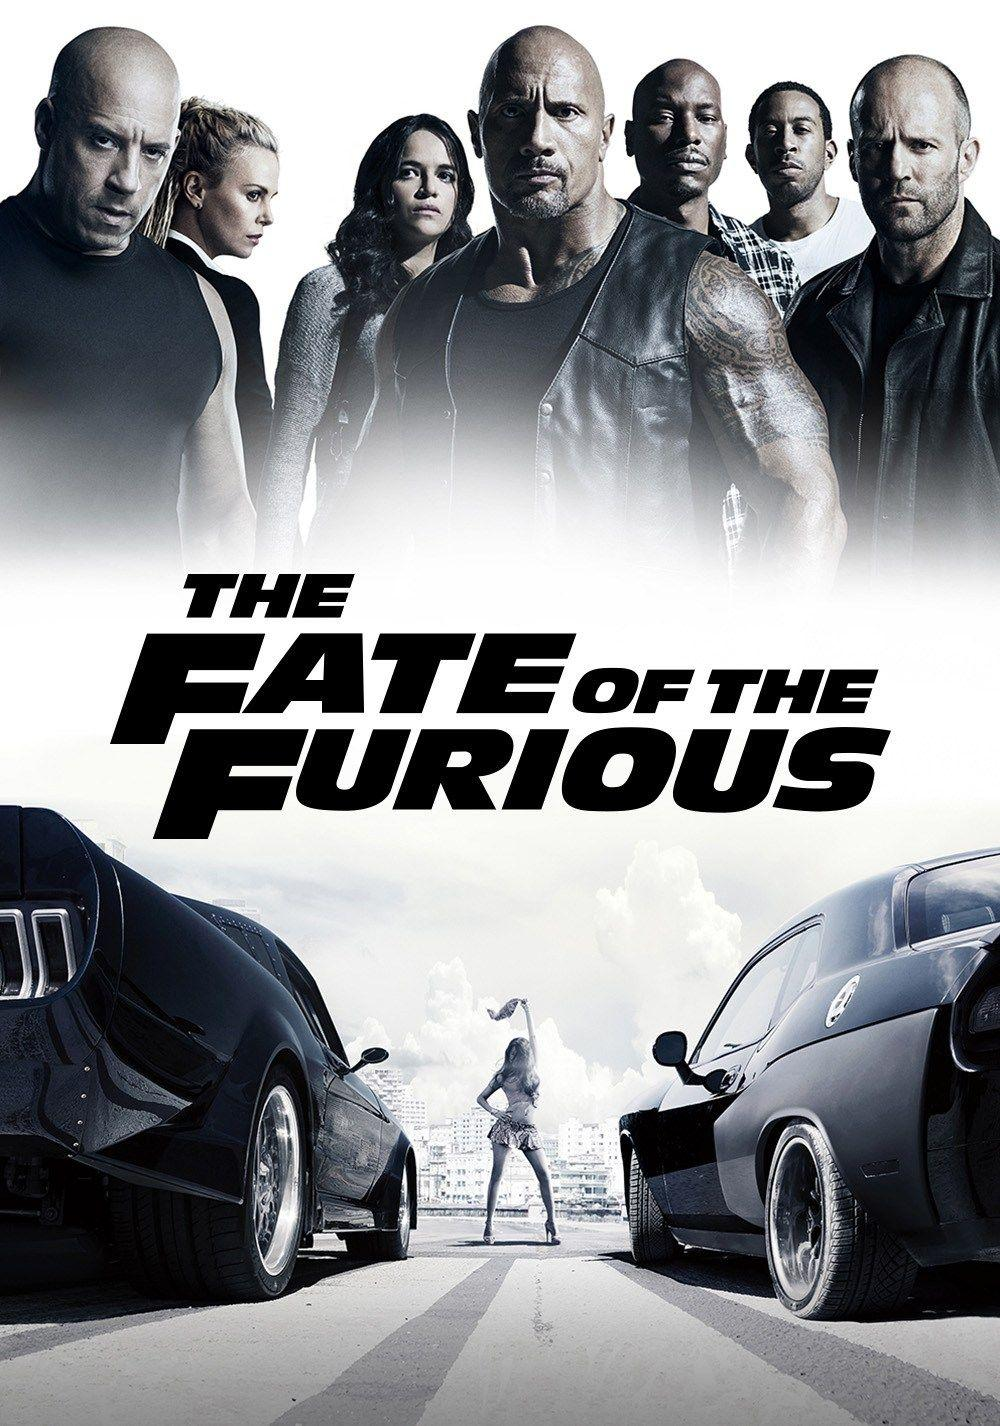 The Fate Of The Furious Wallpapers Wallpaper Cave